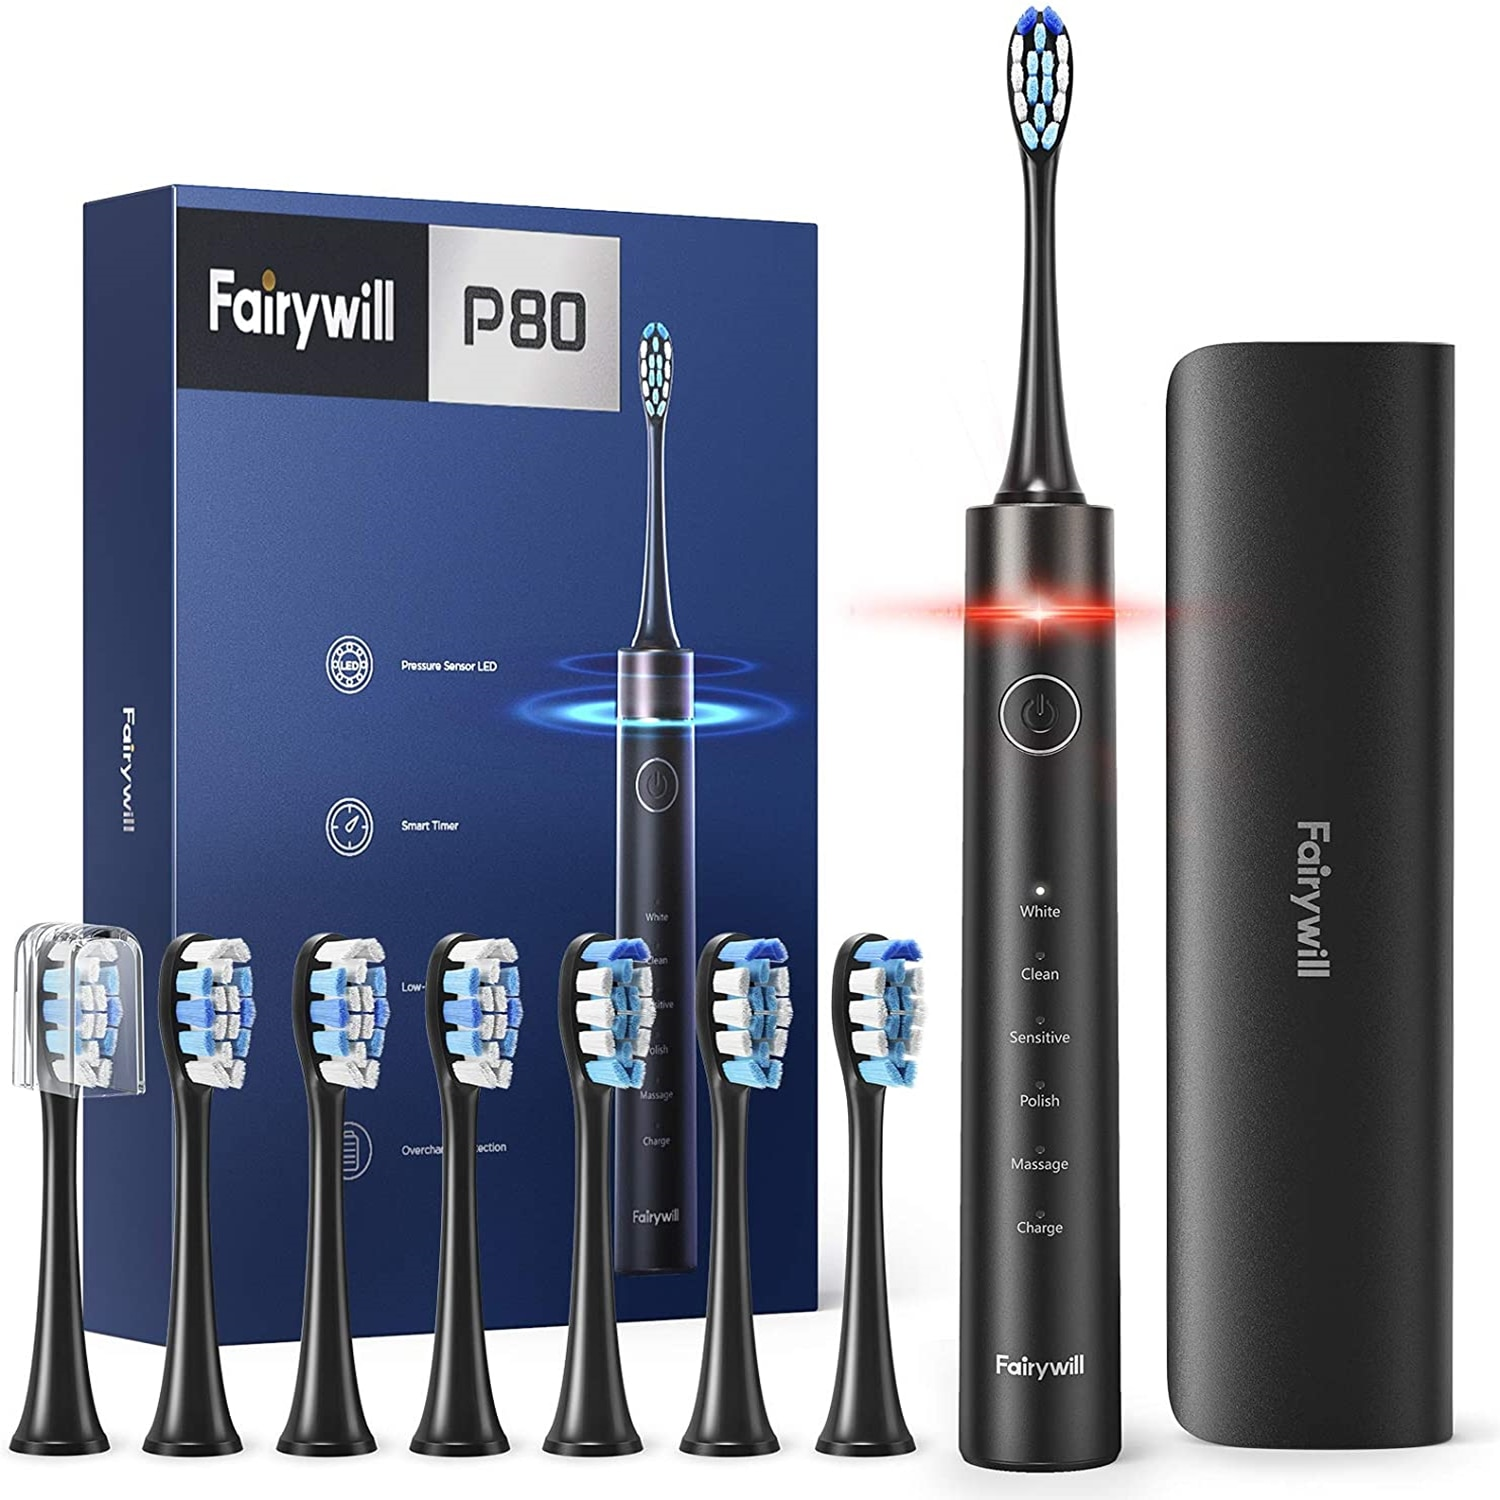 Fairywill Electric Toothbrush P80 Smart Timer Quiet IPX7 Waterproof Fast Charging 8 Replacement Heads 5 Modes with Travel Case